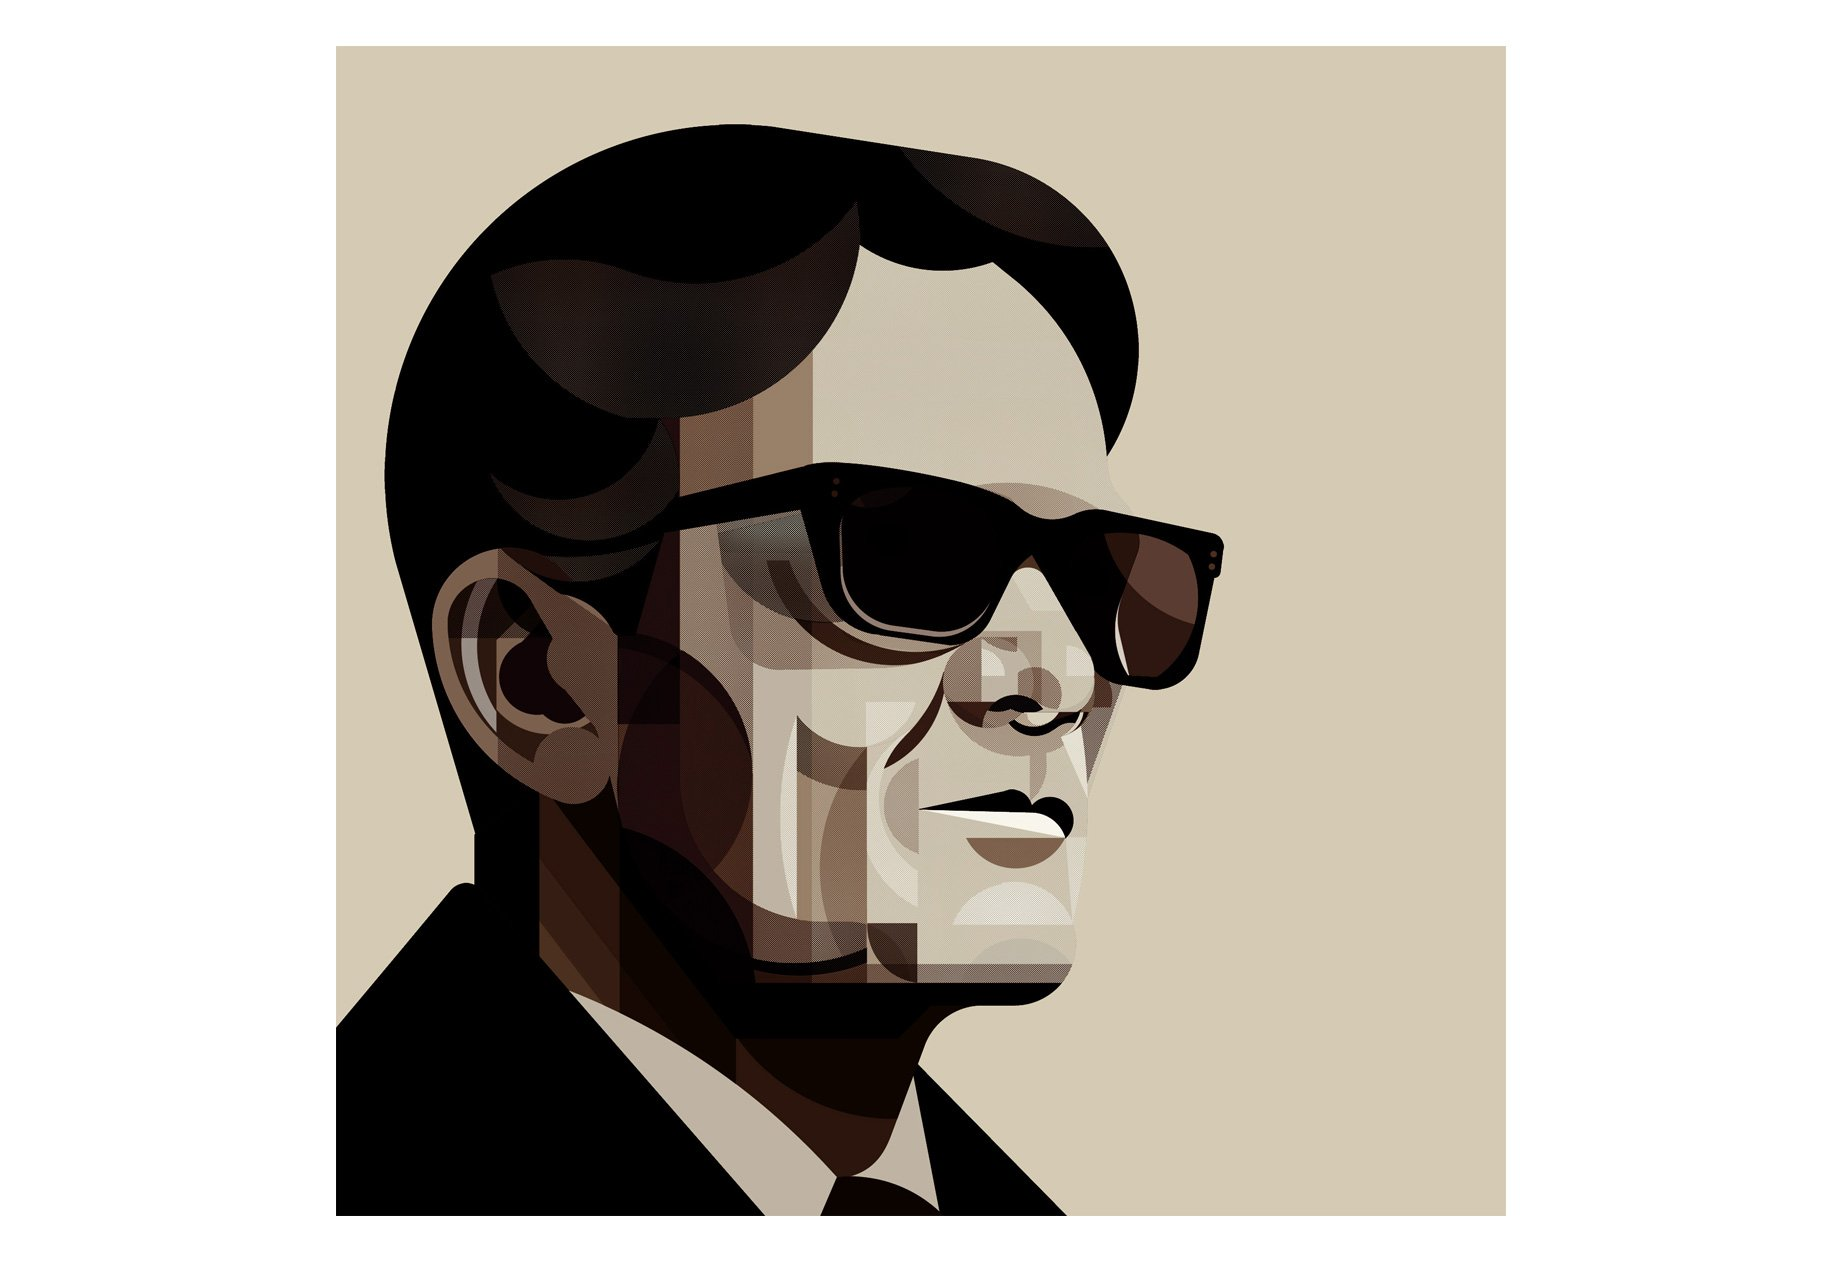 pasolini-illustrated-portrait-01